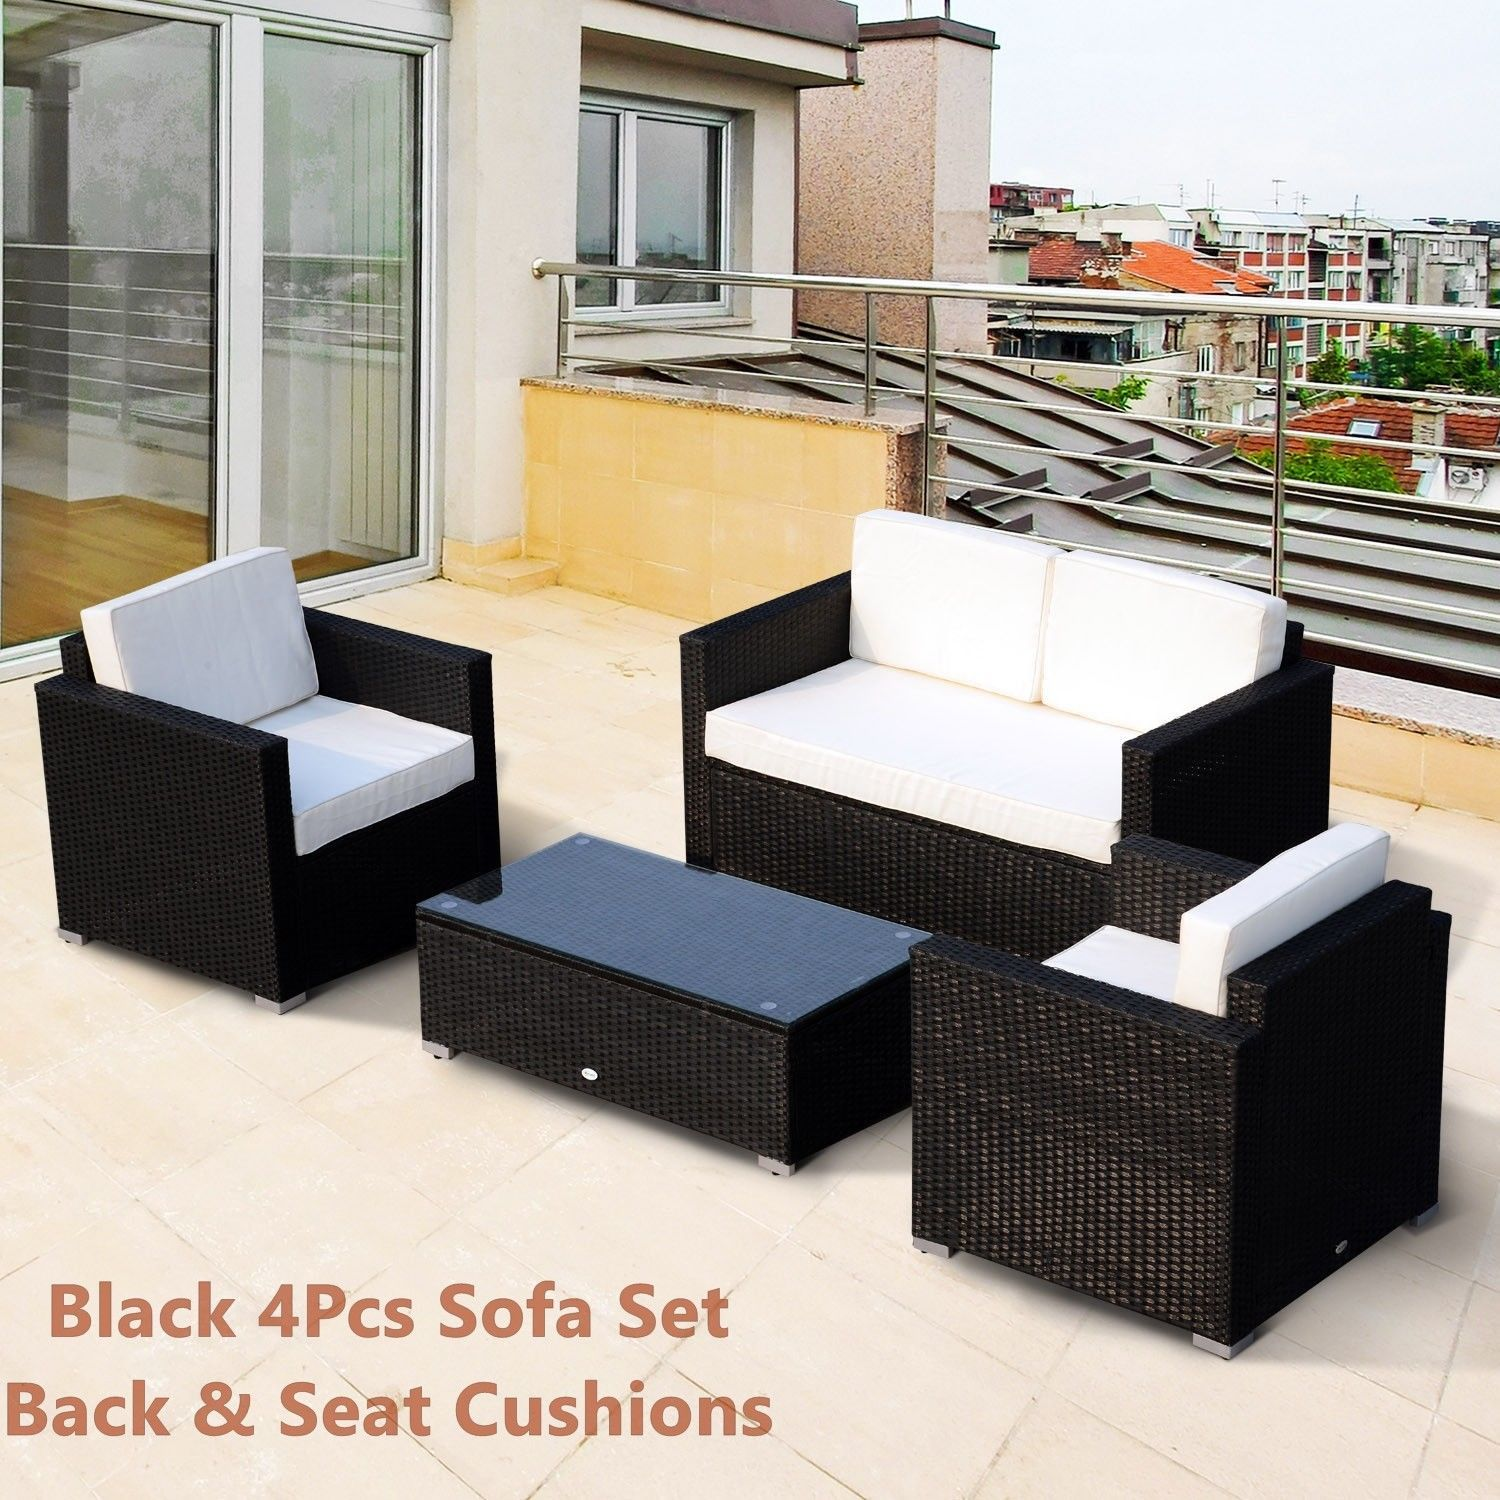 Rattan Sofa Cushioned Set Garden Wicker Glass Top Table Armchairs 4Pcs Black New